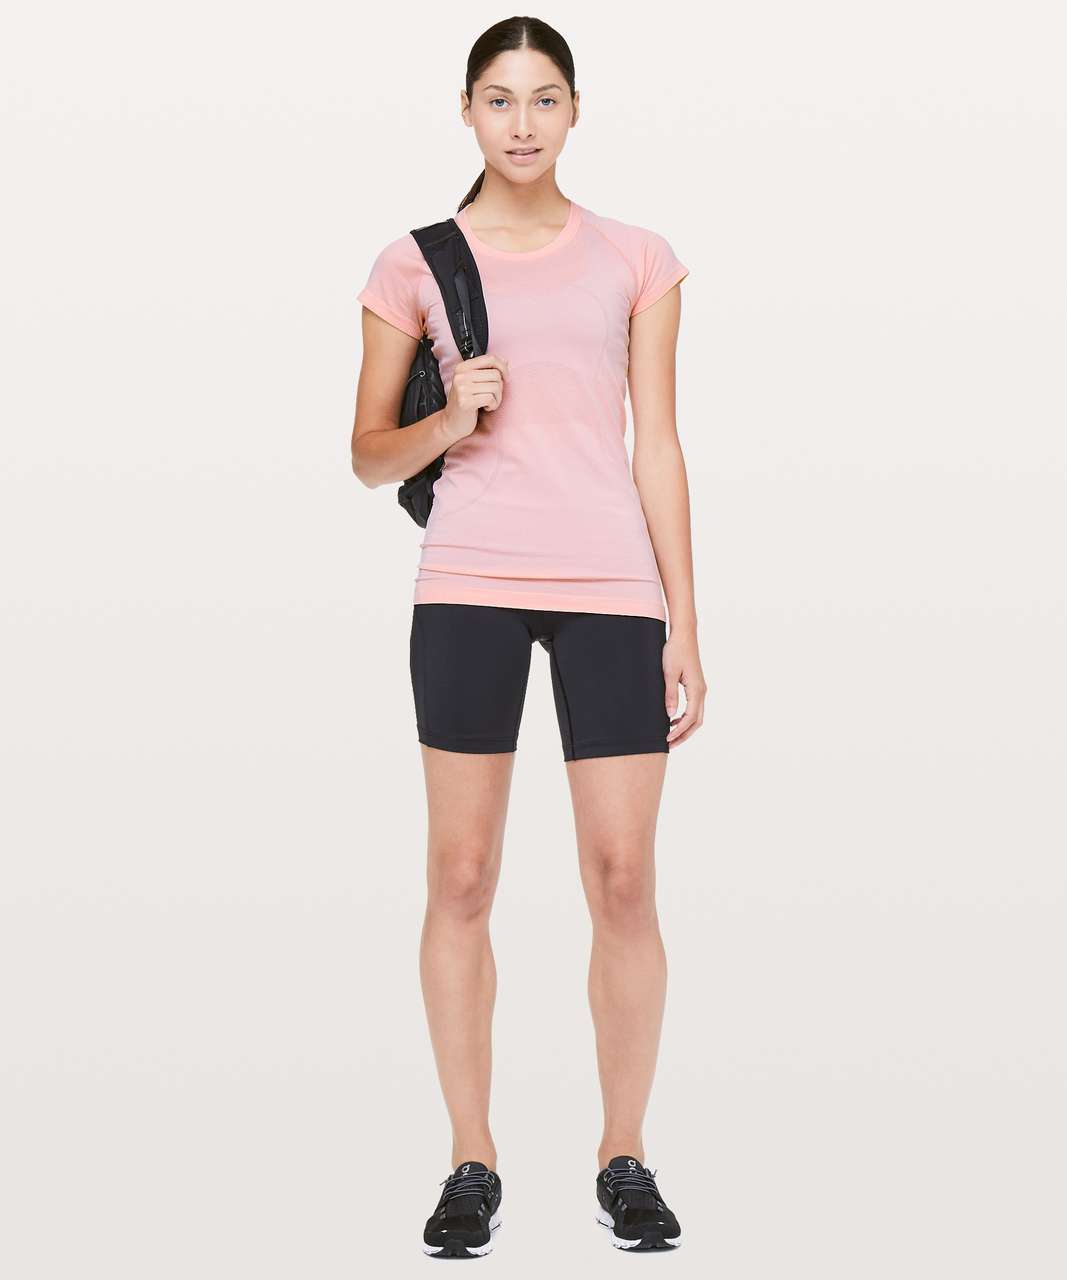 Lululemon Swiftly Tech Short Sleeve Crew - Dusty Pink / Dusty Pink